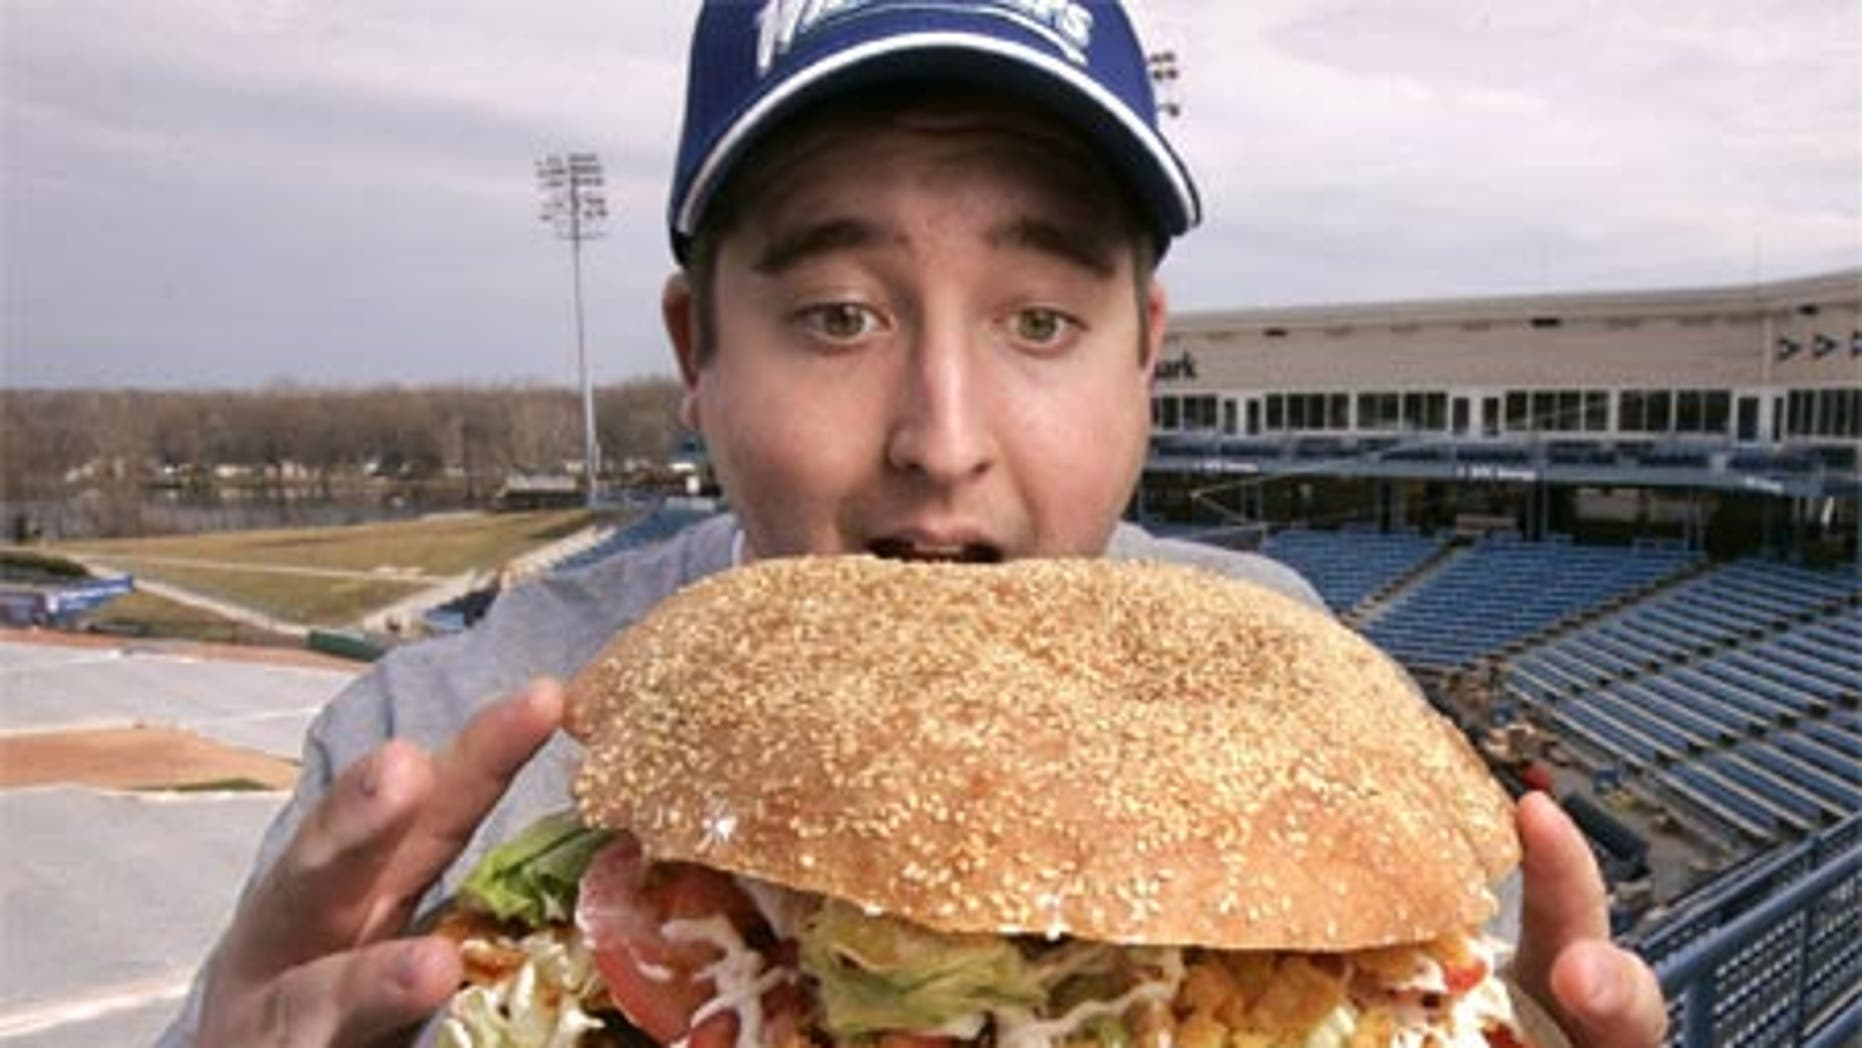 March 24: Josh Kowalczyk, an intern with the West Michigan Whitecaps, in Comstock Park, Mich. poses with the monster $20 burger.